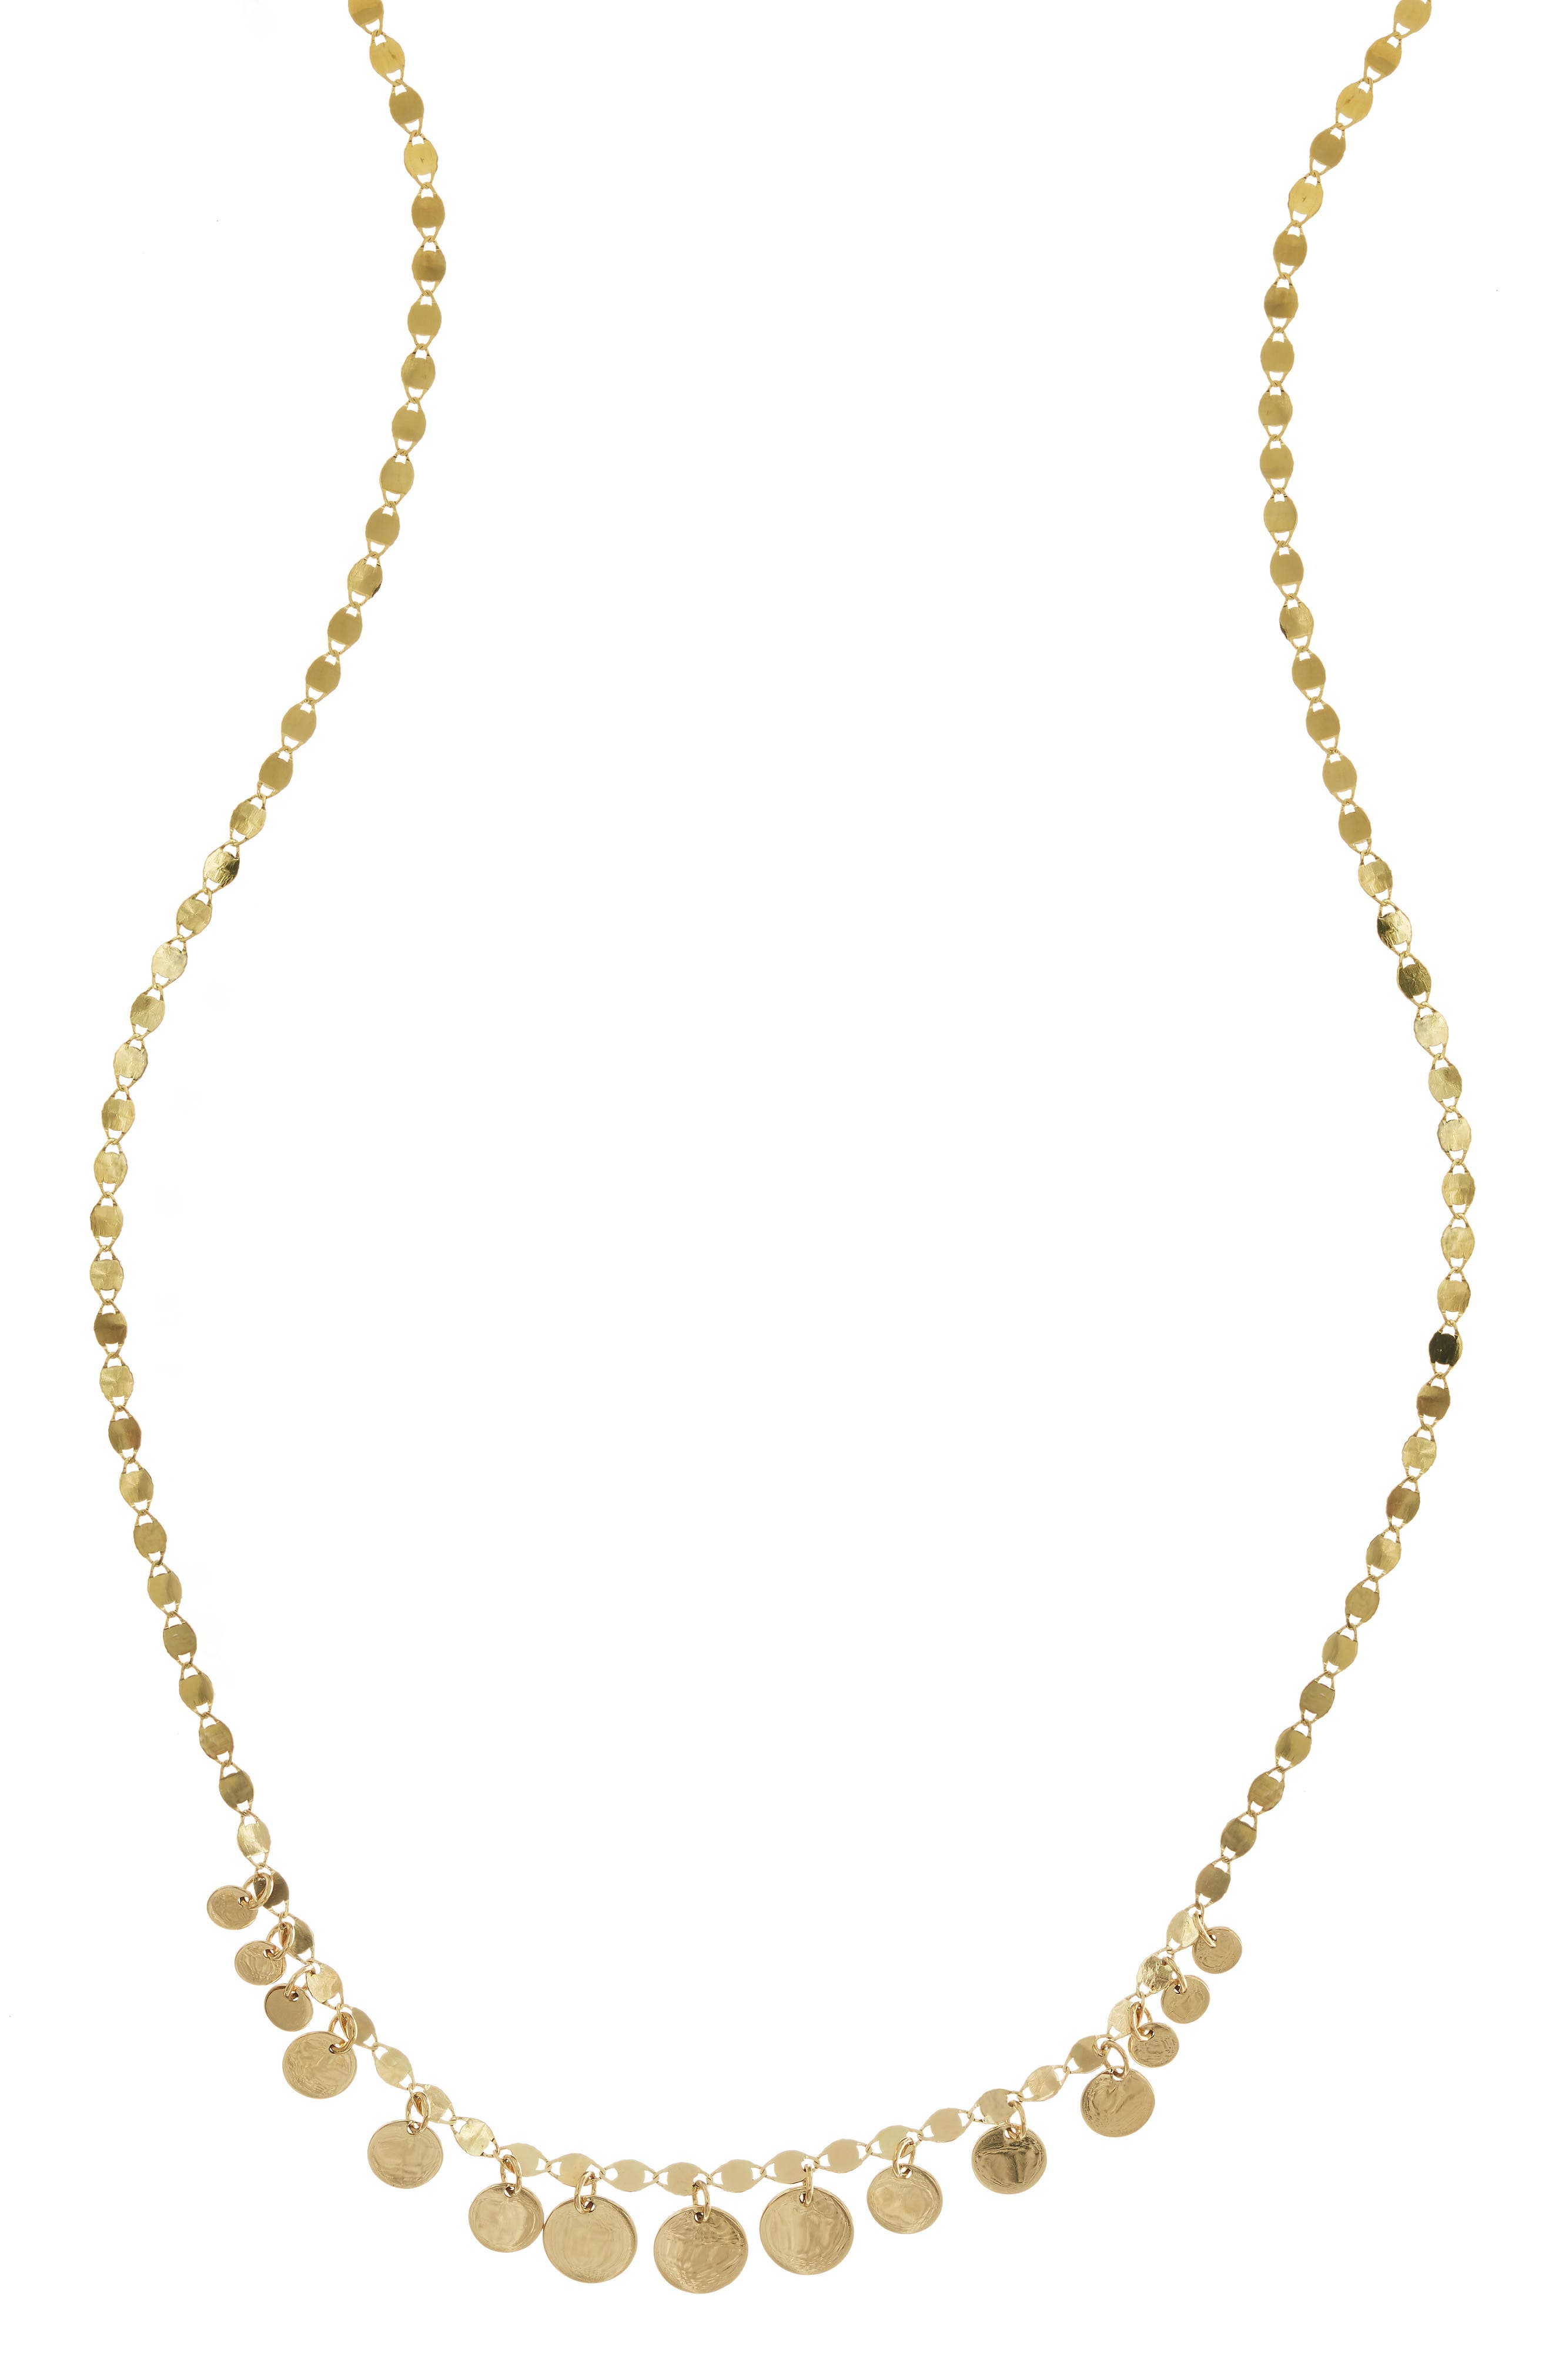 Lane Jewelry Frontal Necklace,                             Main thumbnail 1, color,                             YELLOW GOLD